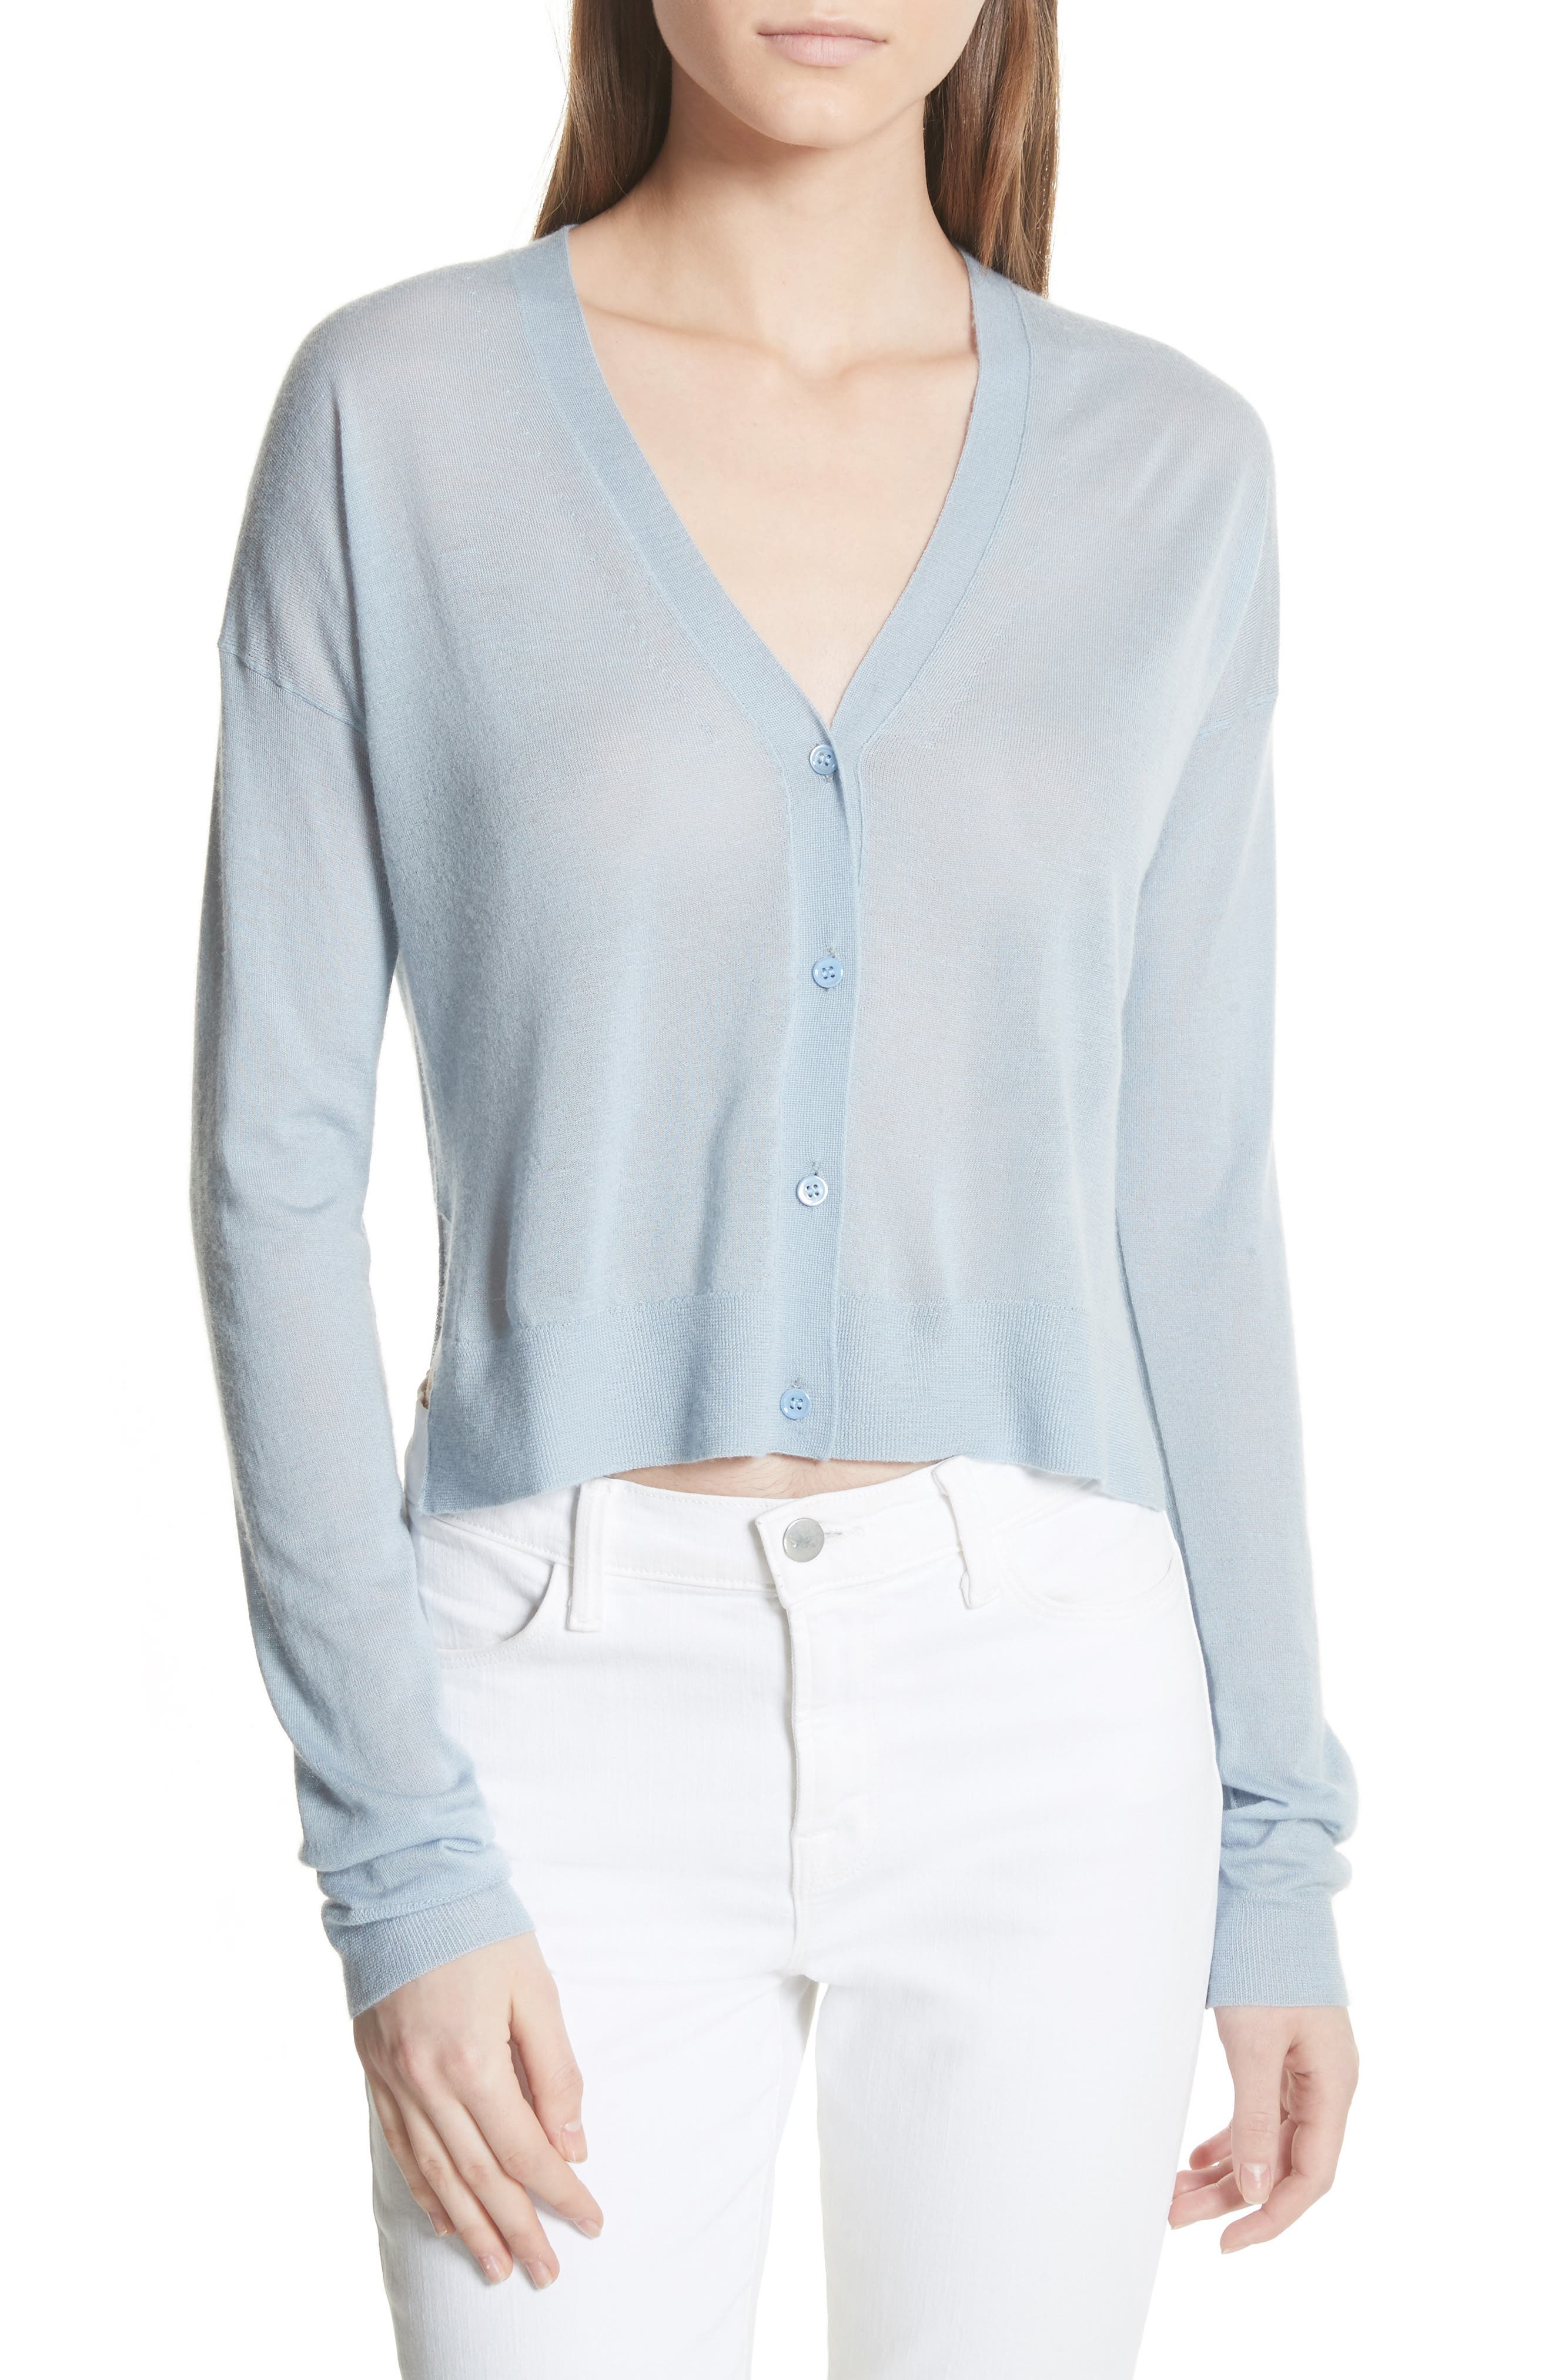 Hanelee Featherweight Cashmere Cardigan,                             Main thumbnail 1, color,